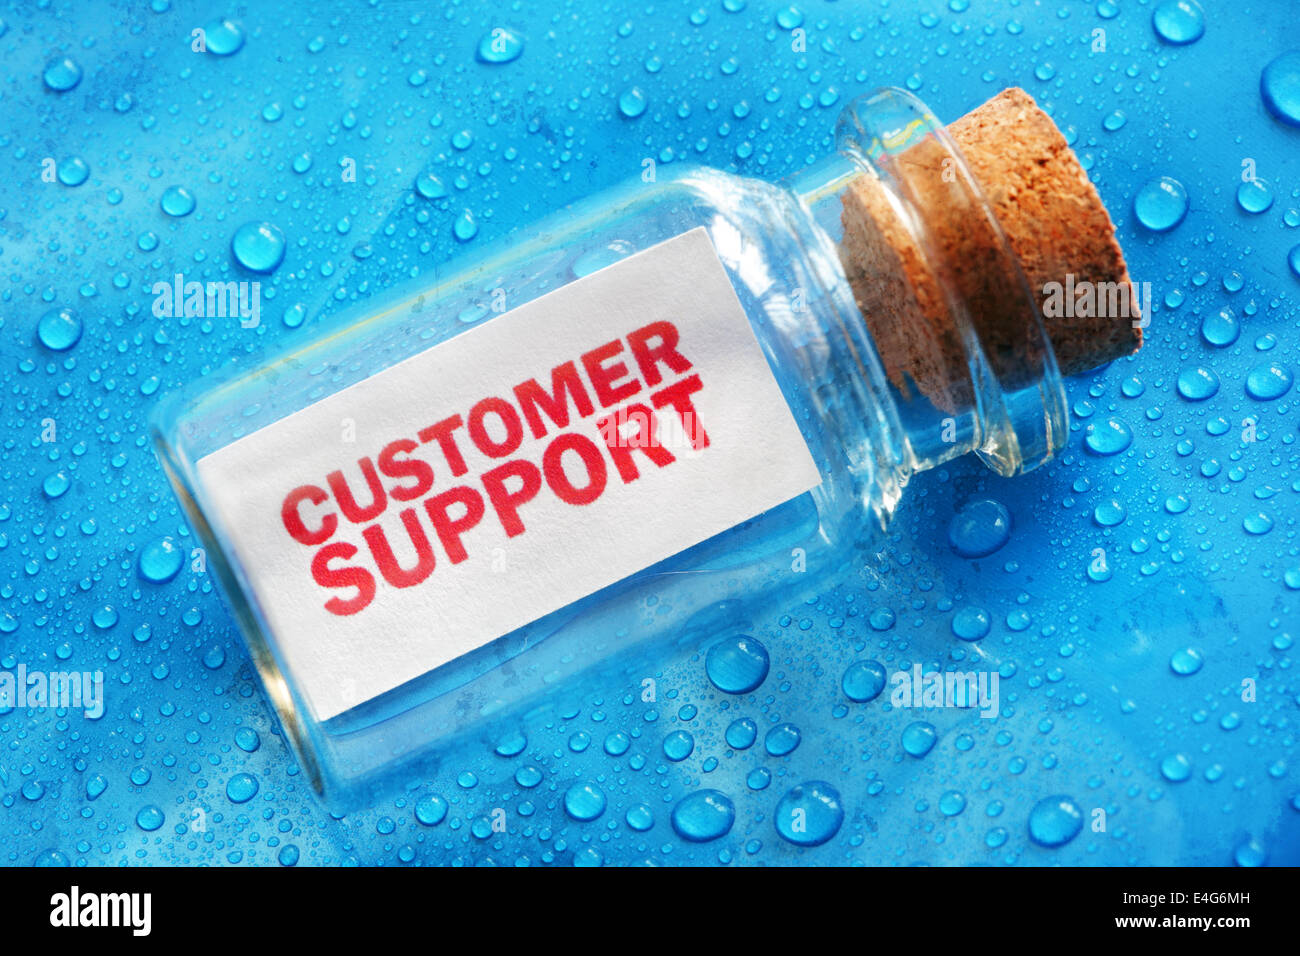 Customer support - Stock Image